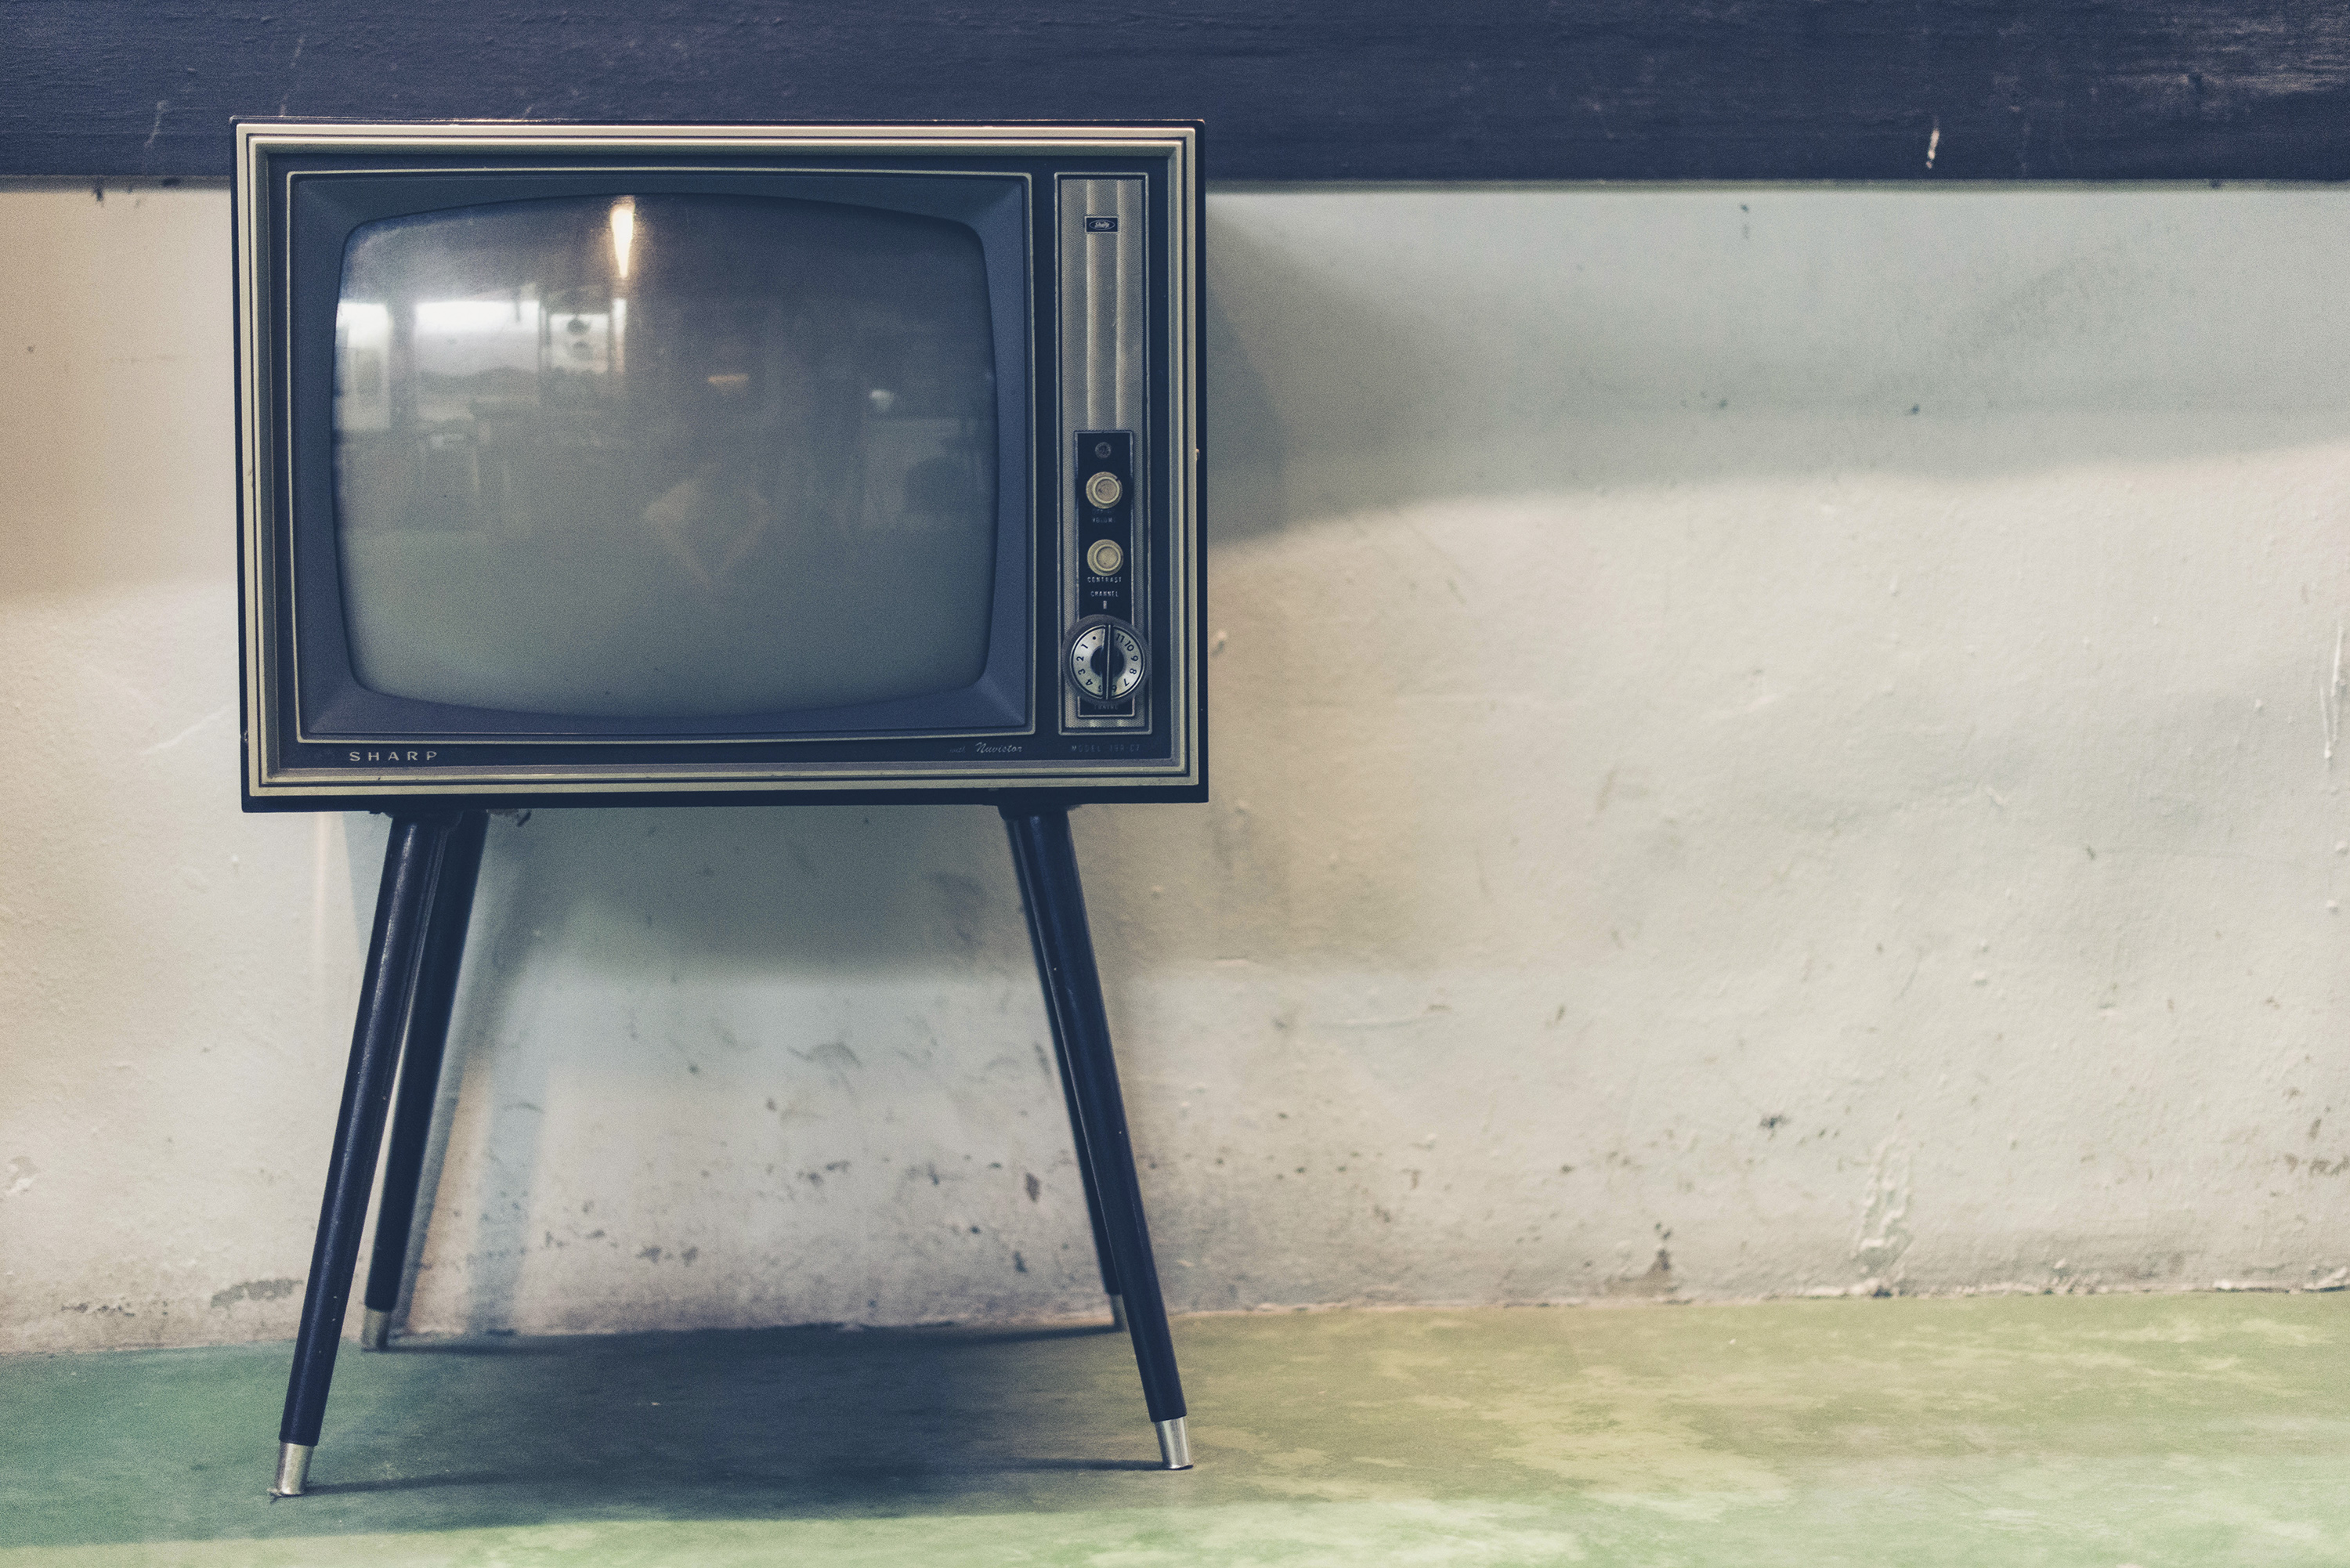 Turn Off  displays centrally in piSignage - with TV_OFF feature.